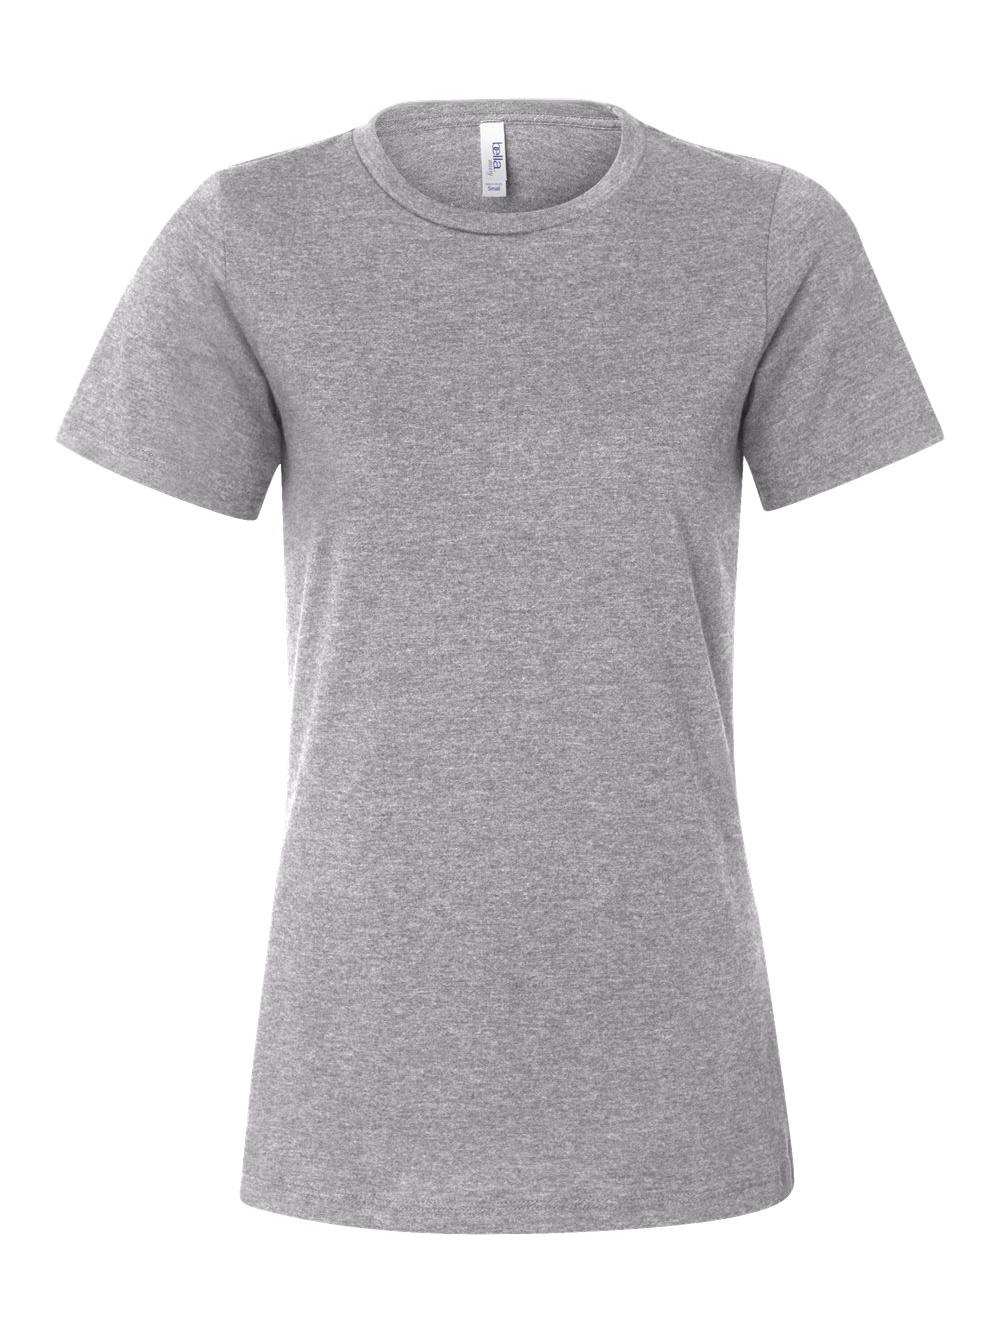 Bella-Canvas-Women-039-s-Relaxed-Short-Sleeve-Jersey-Tee-6400 thumbnail 6